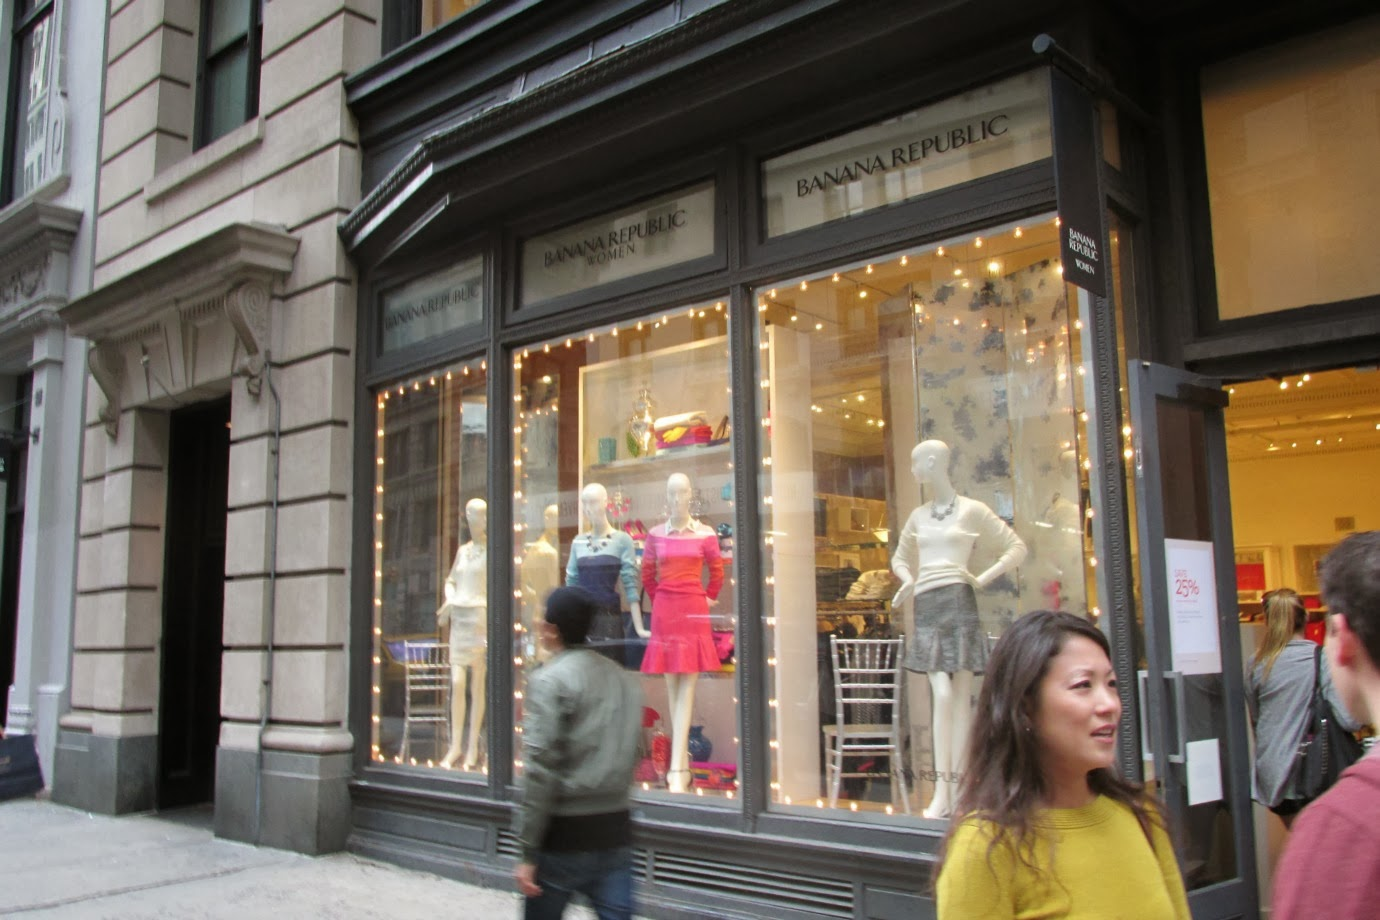 Everyone was pretty friendly and eager to help. Unlike the Banana Republic (BR) stores in the Baltimore area, this store is probably x bigger in square footage and all the items are well stocked/5(80).